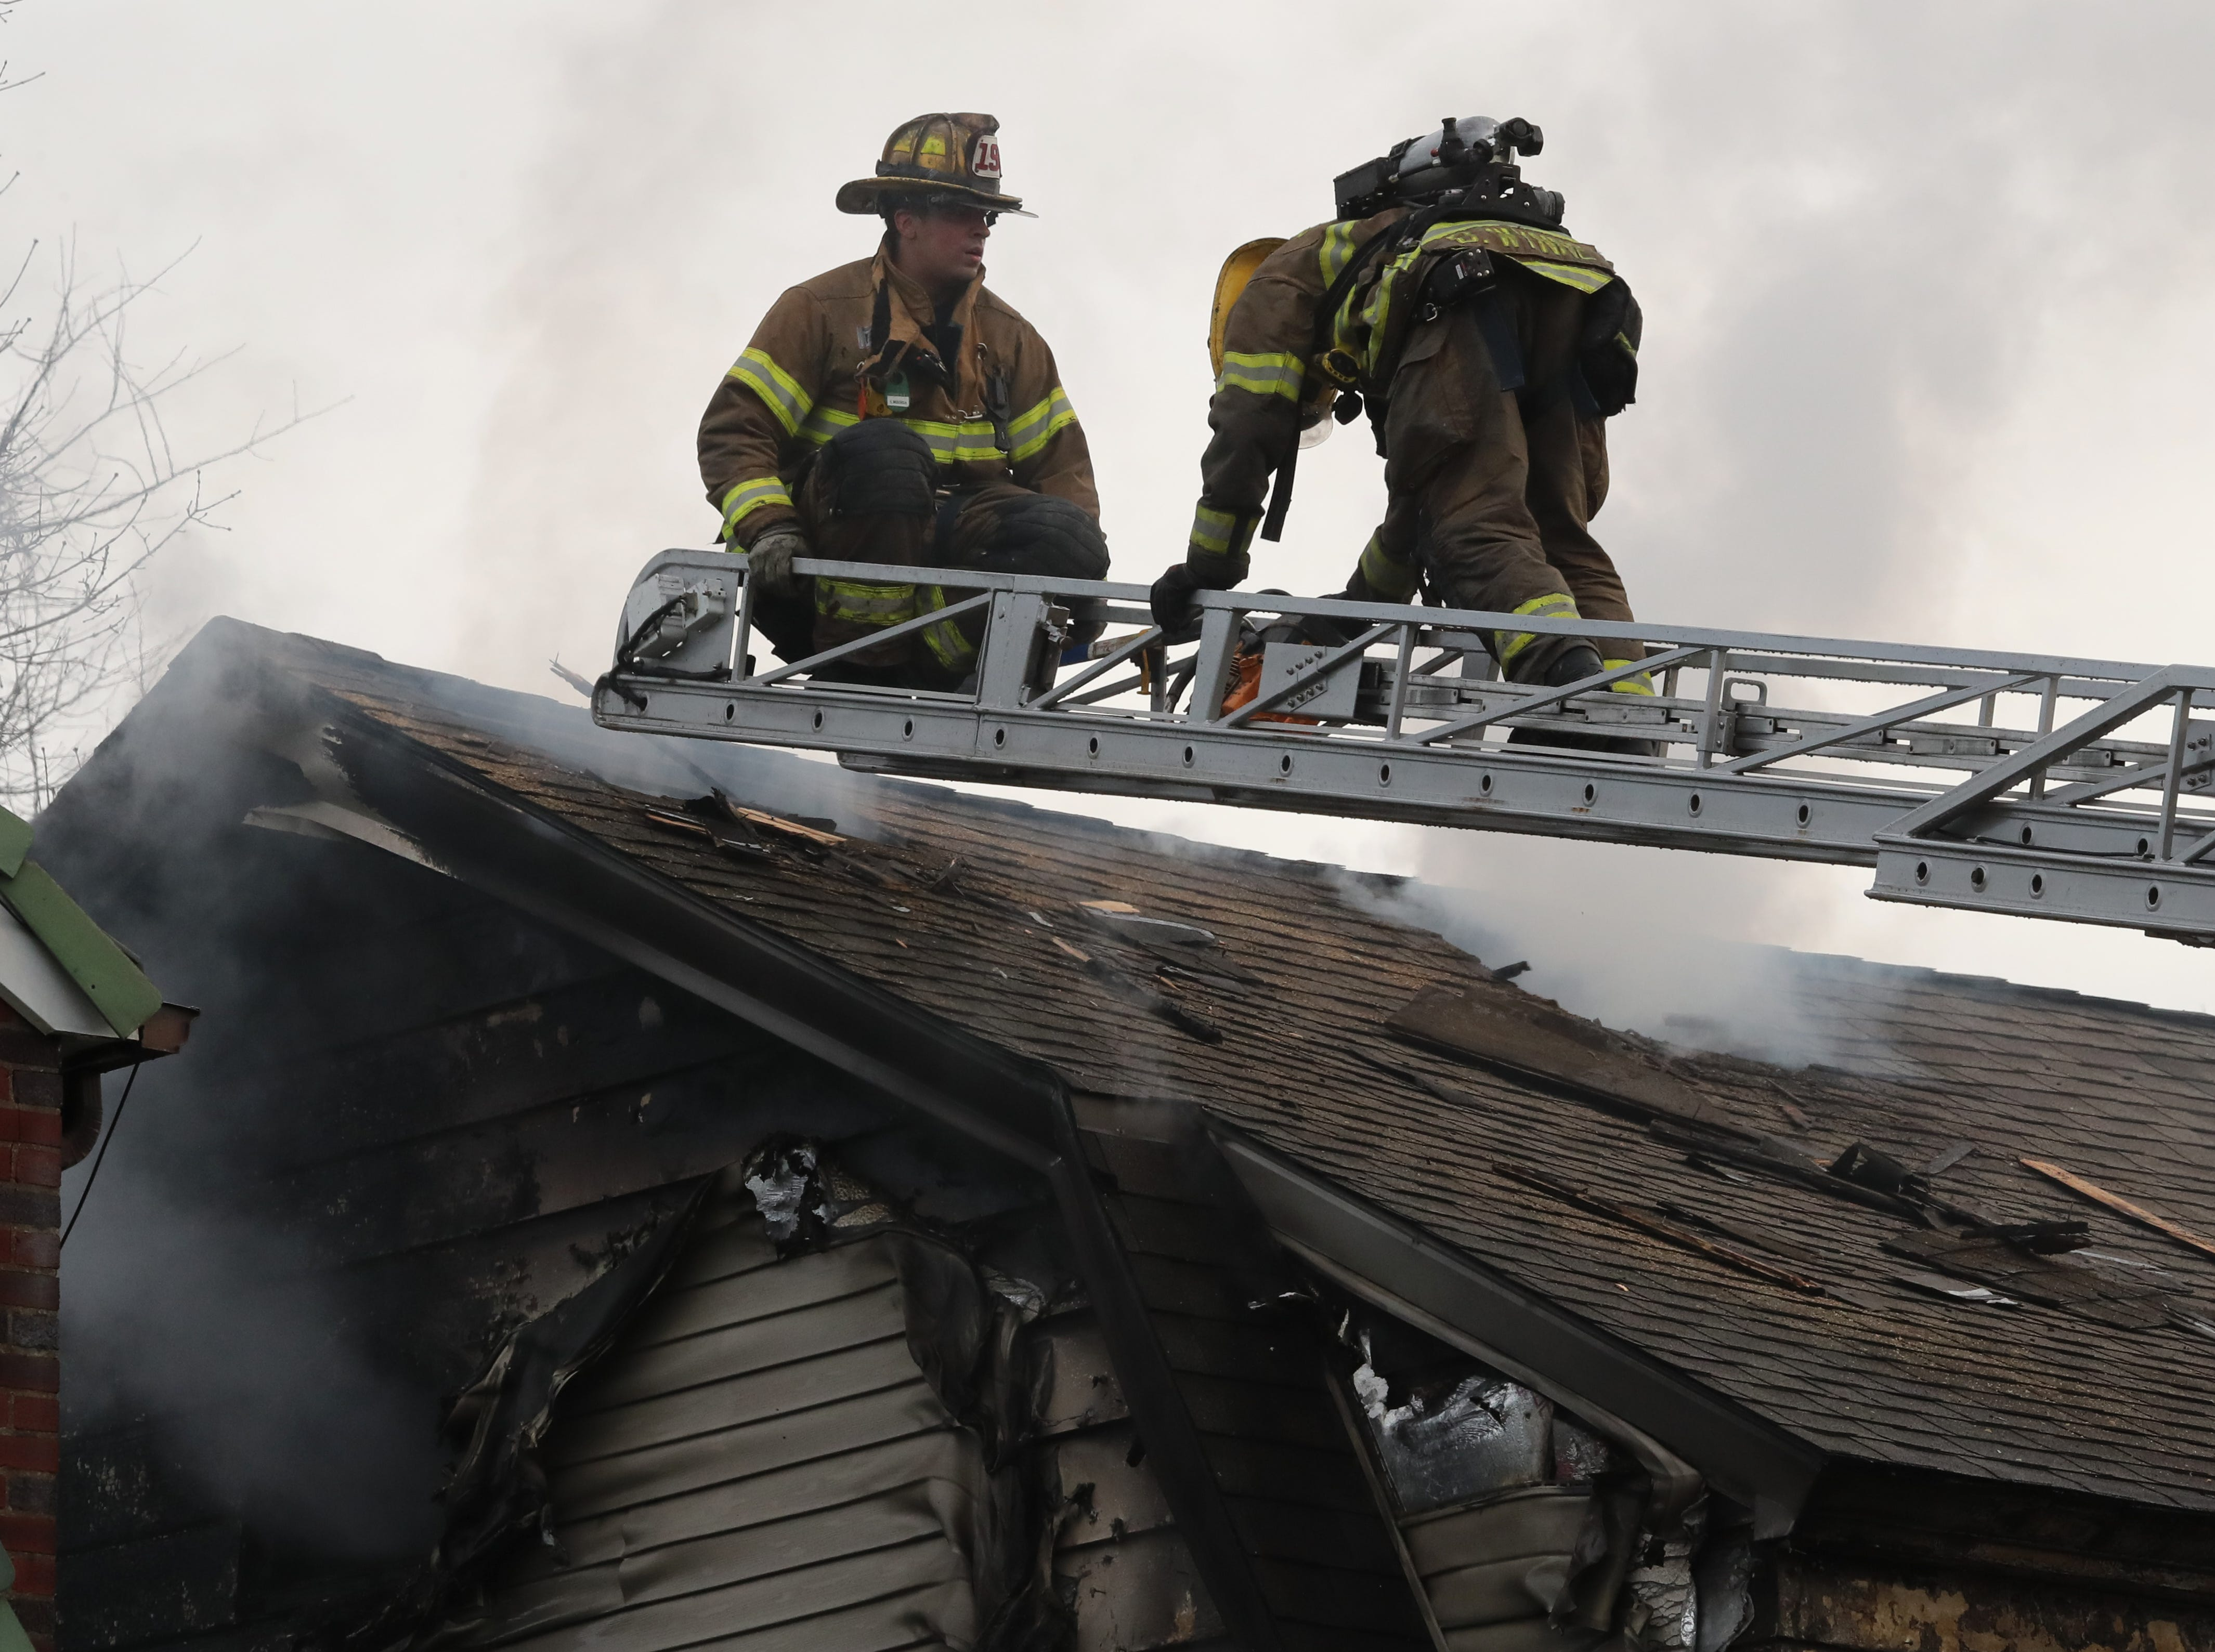 Suffern Fire Dept. firefighters vent the roof of a house fire on Washington Ave. in Suffern Dec. 5, 2018.